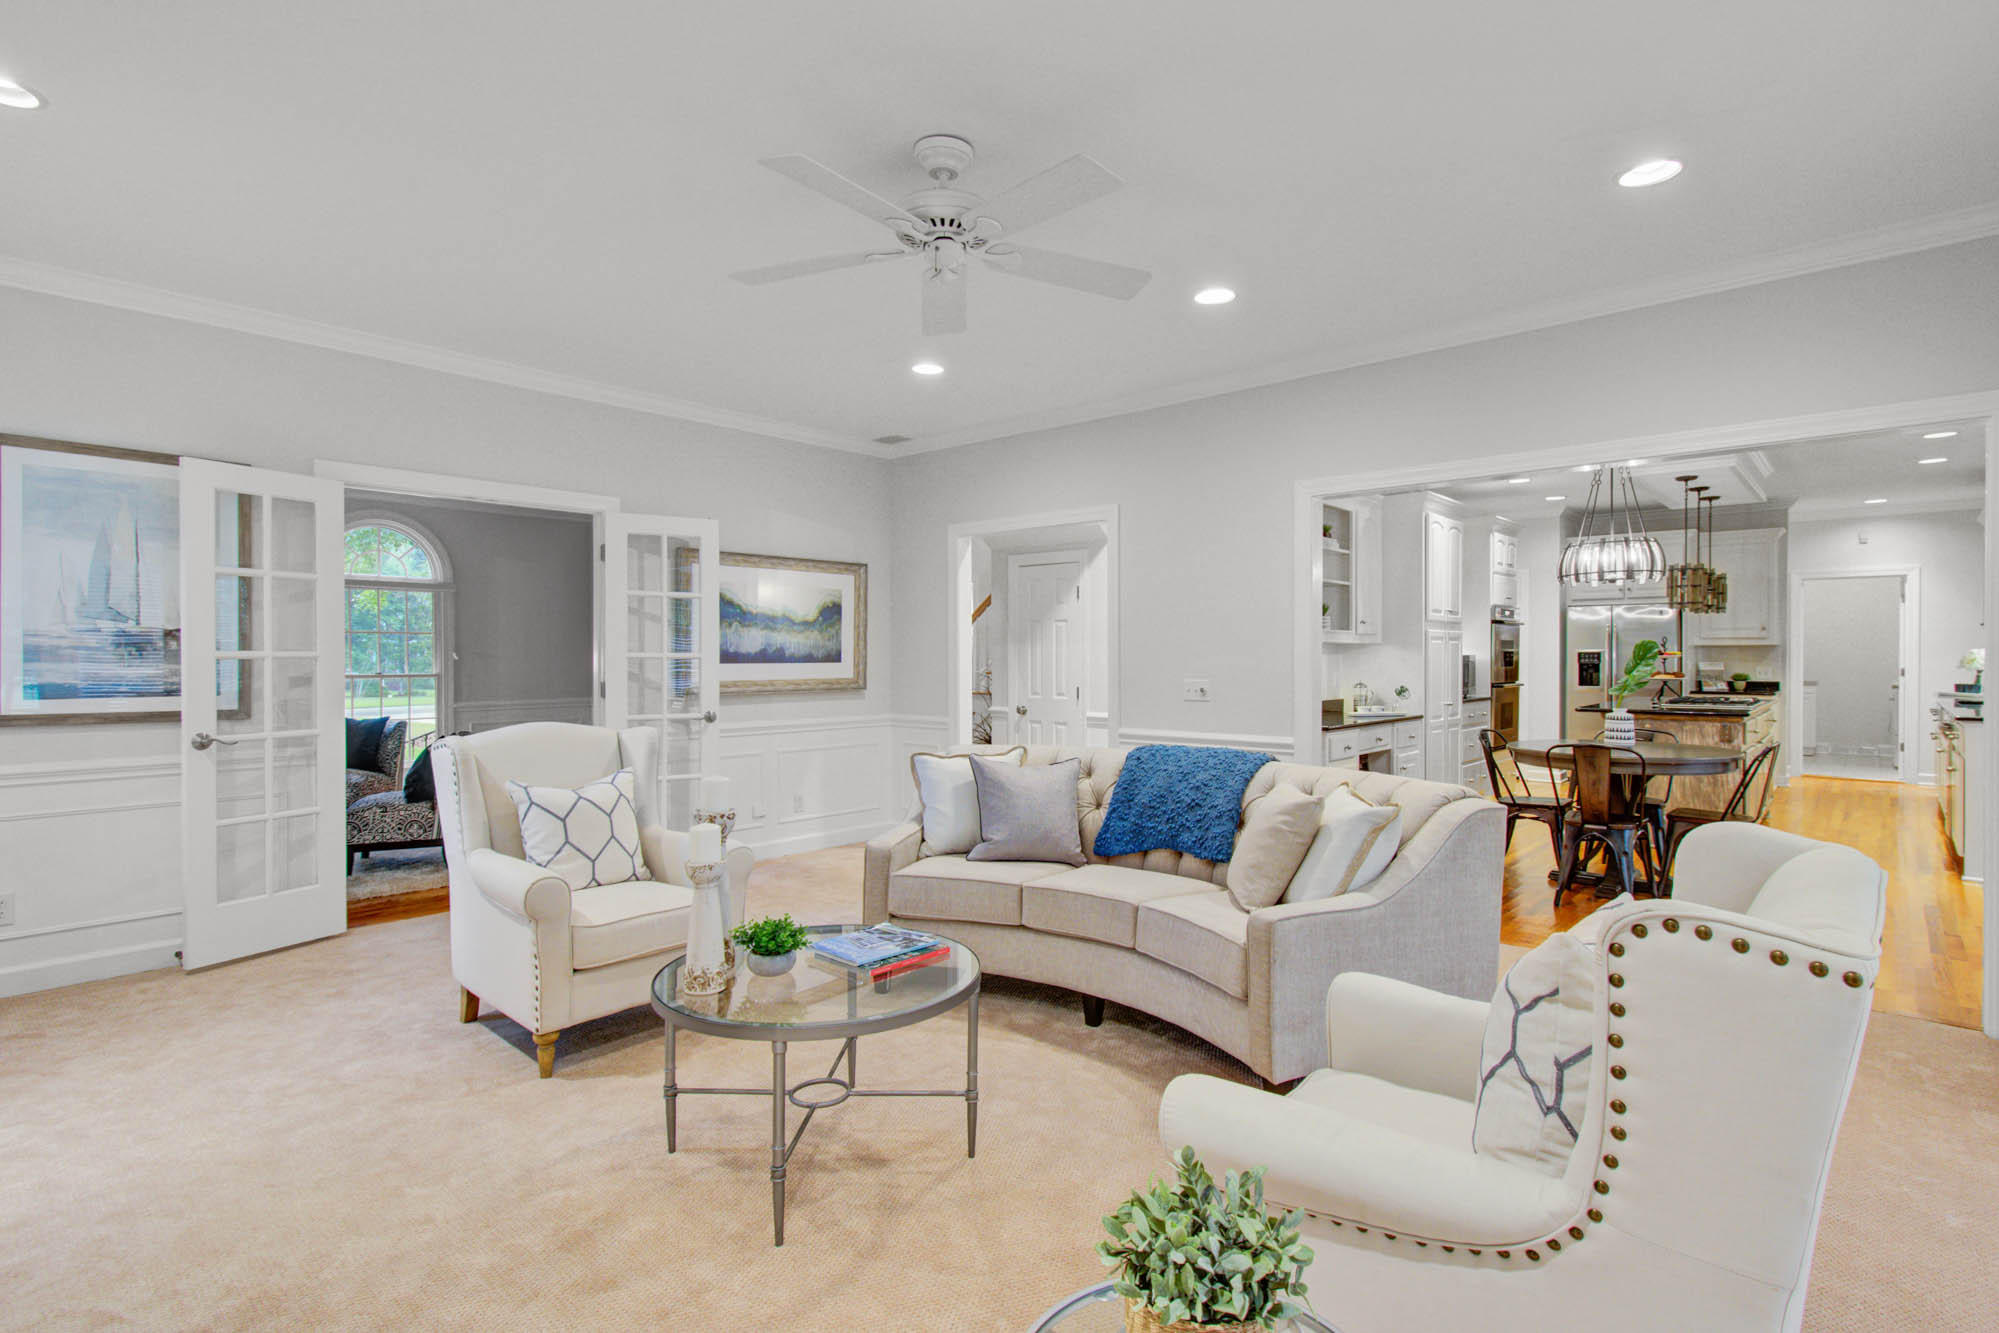 Dunes West Homes For Sale - 2103 Sewee Indian, Mount Pleasant, SC - 40